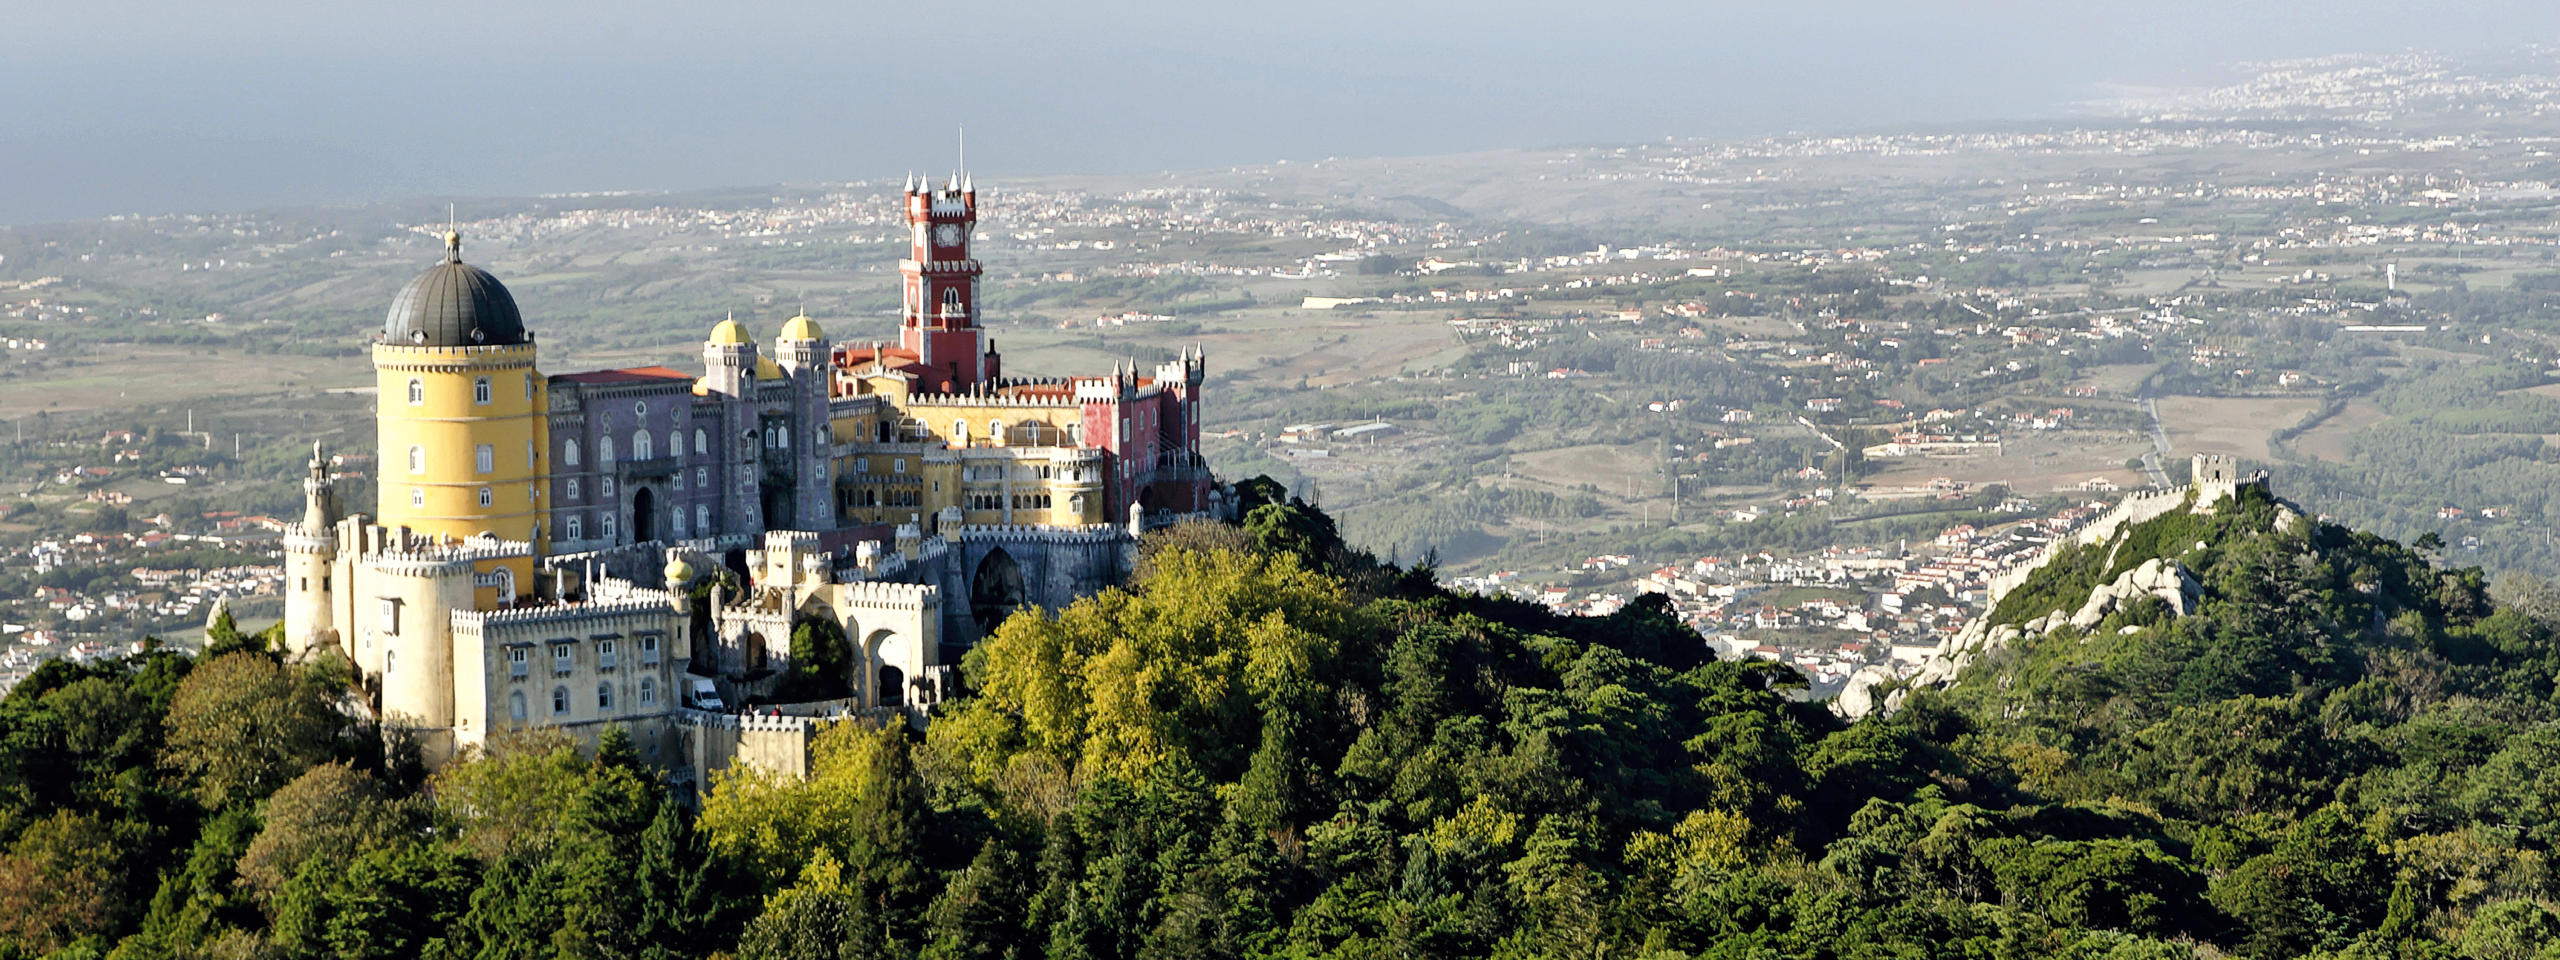 Birdview of Pena palace with the ocean in the background and the Moorish Castle on the right